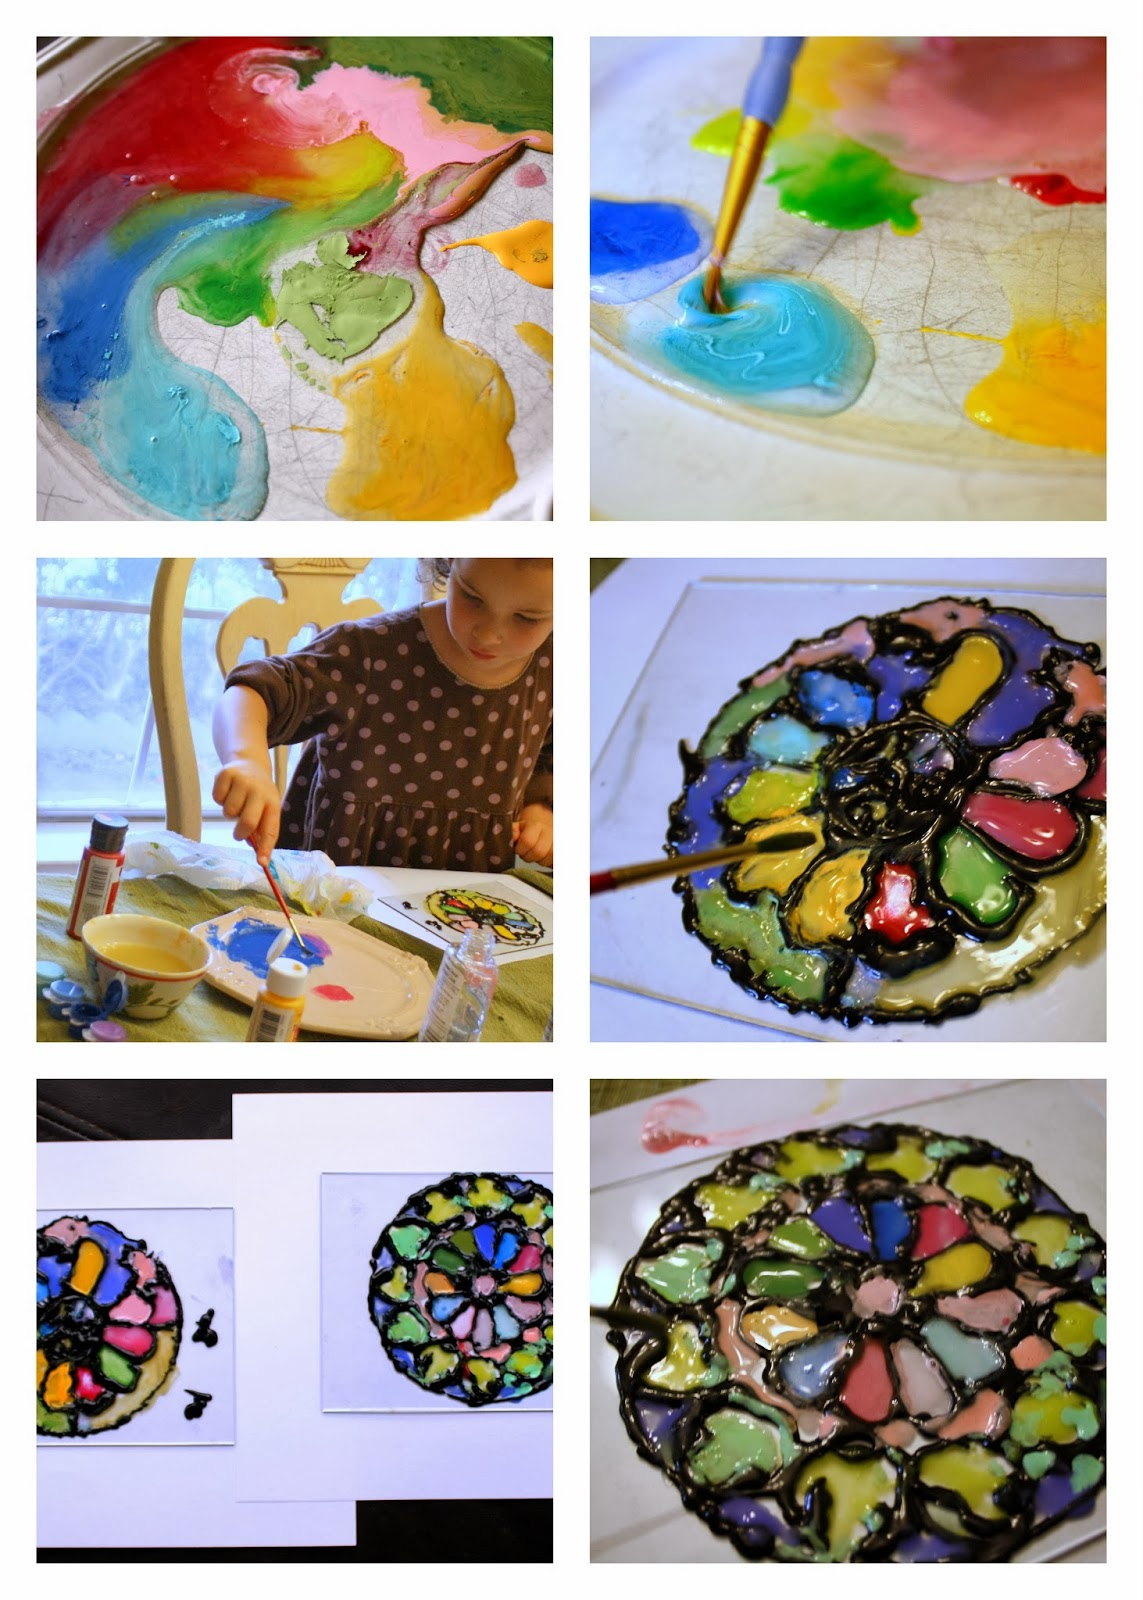 Having fun at home stained glass kids medieval project for How to learn glass painting at home